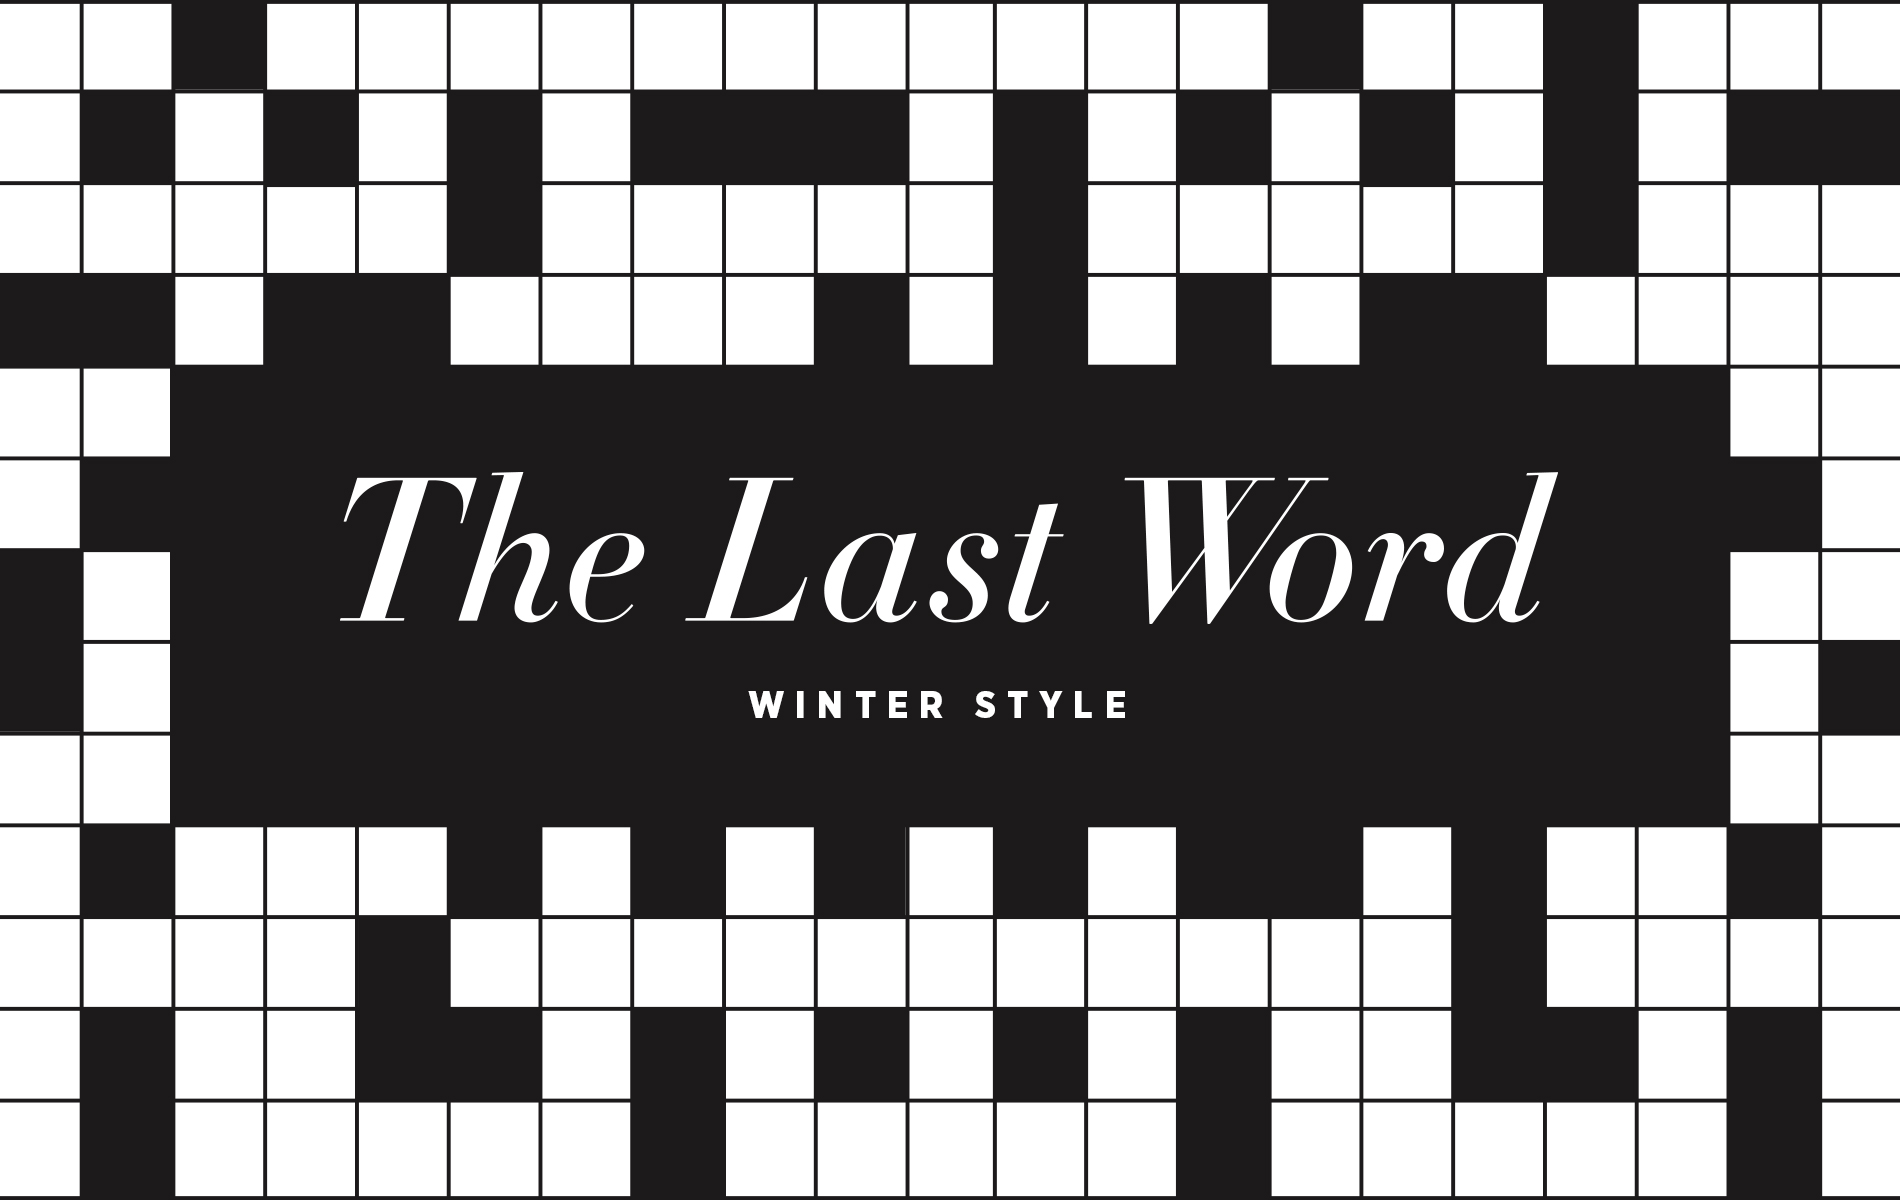 VIE magazine Crossword Puzzle Winter Style